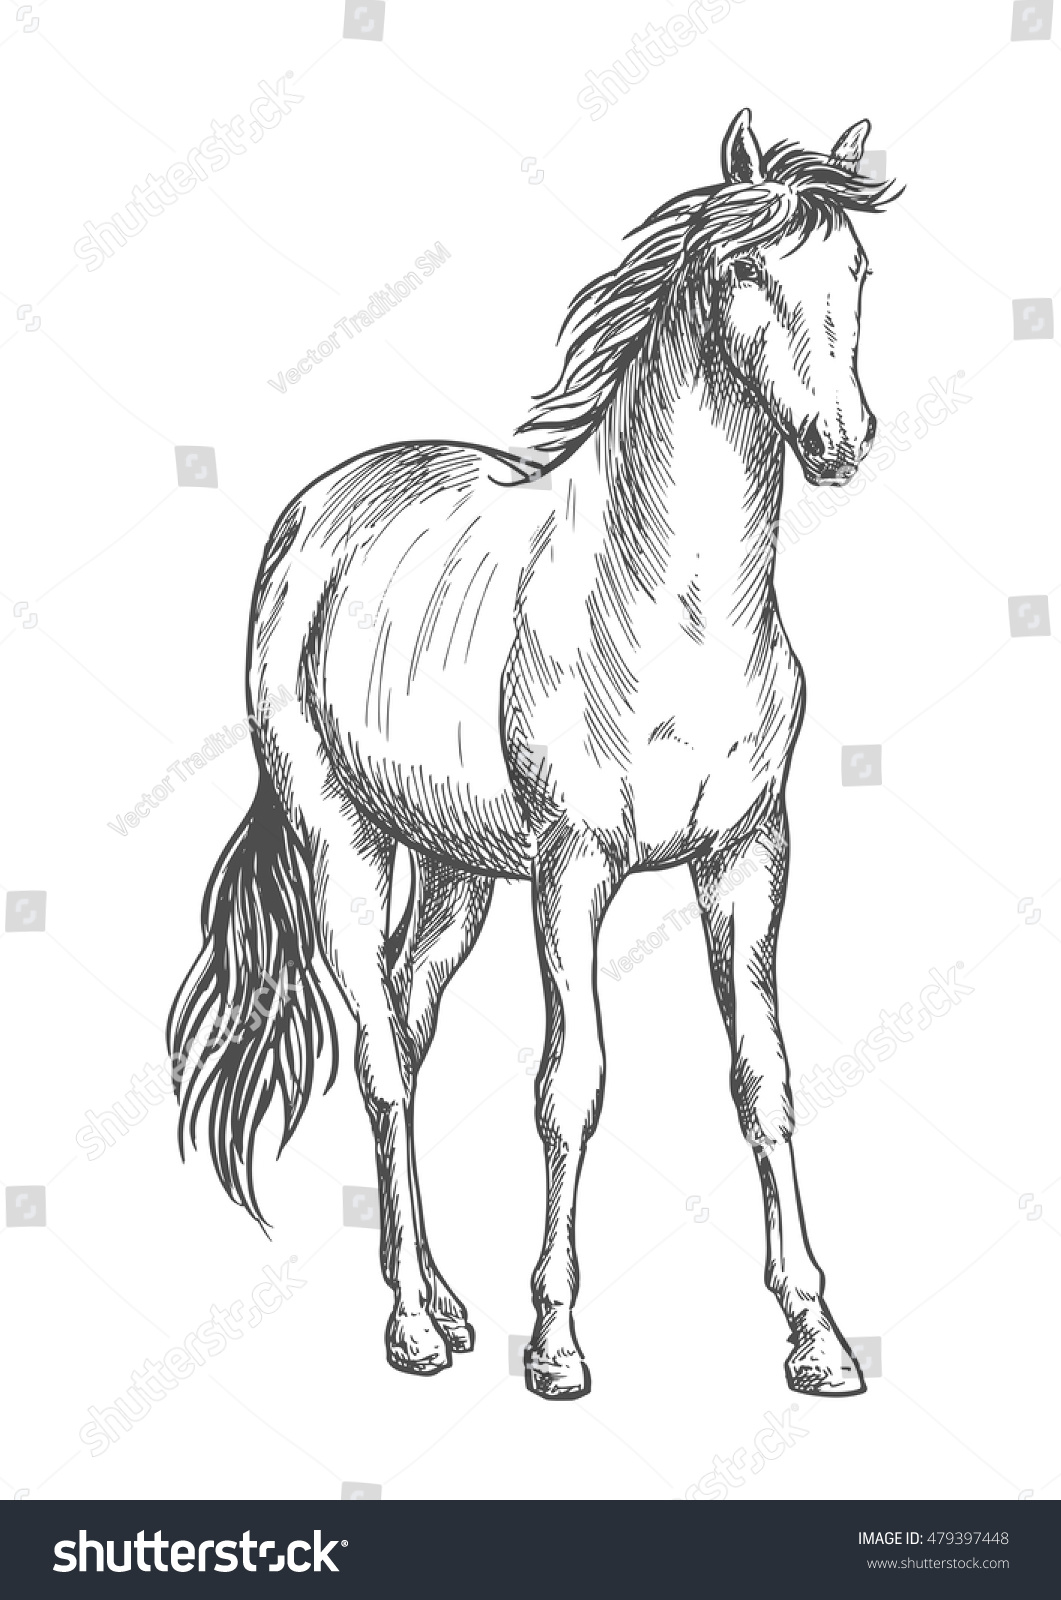 Beautiful White Horse Standing Pencil Sketch Stock Vector Royalty Free 479397448